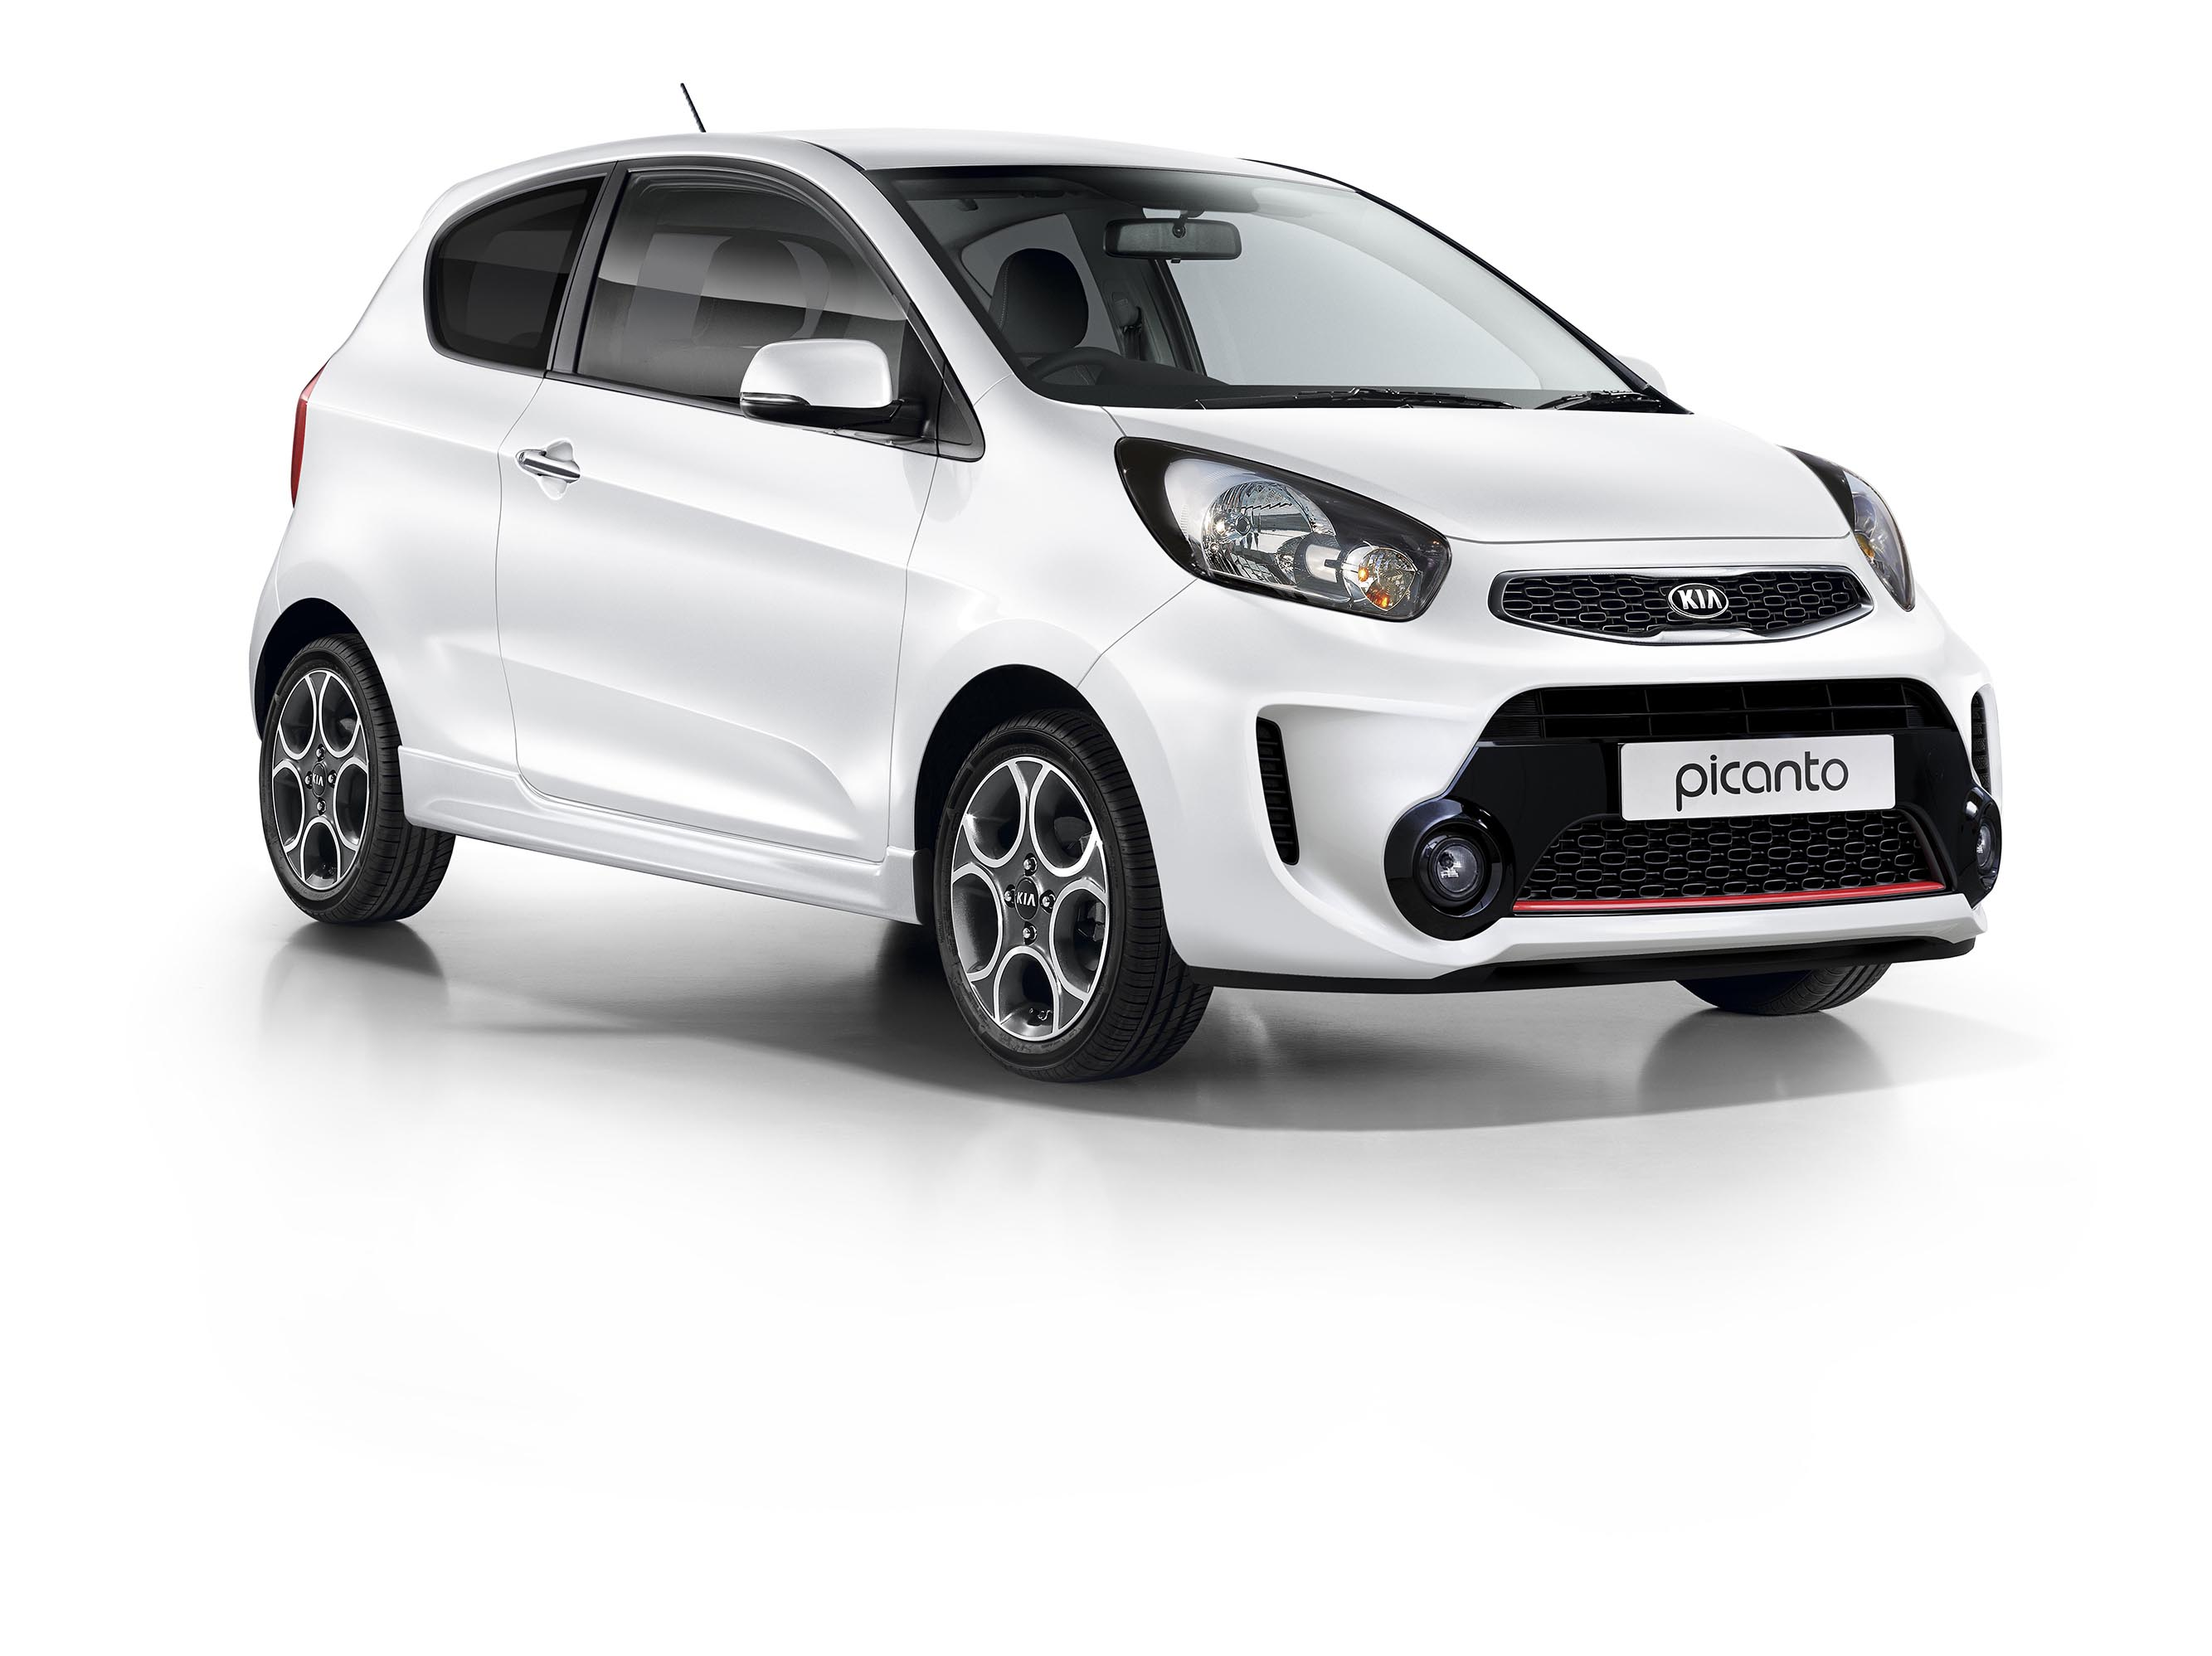 White Kia Picanto in front of a white background